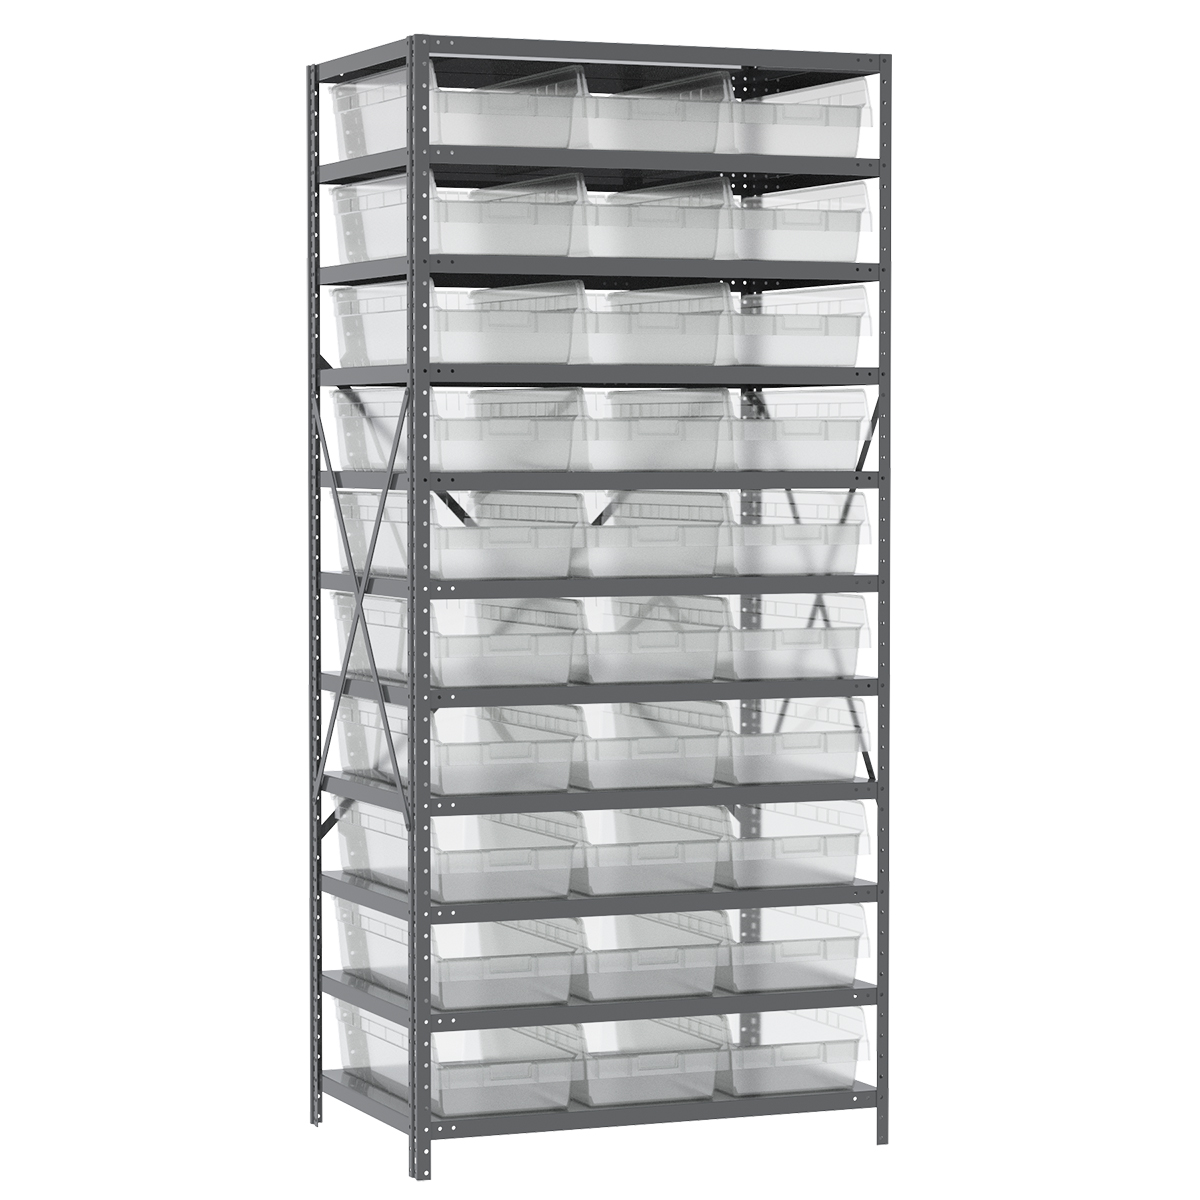 Steel Shelving Kit, 24x36x79, 30 Bins, Gray/Clear.  This item sold in carton quantities of 1.